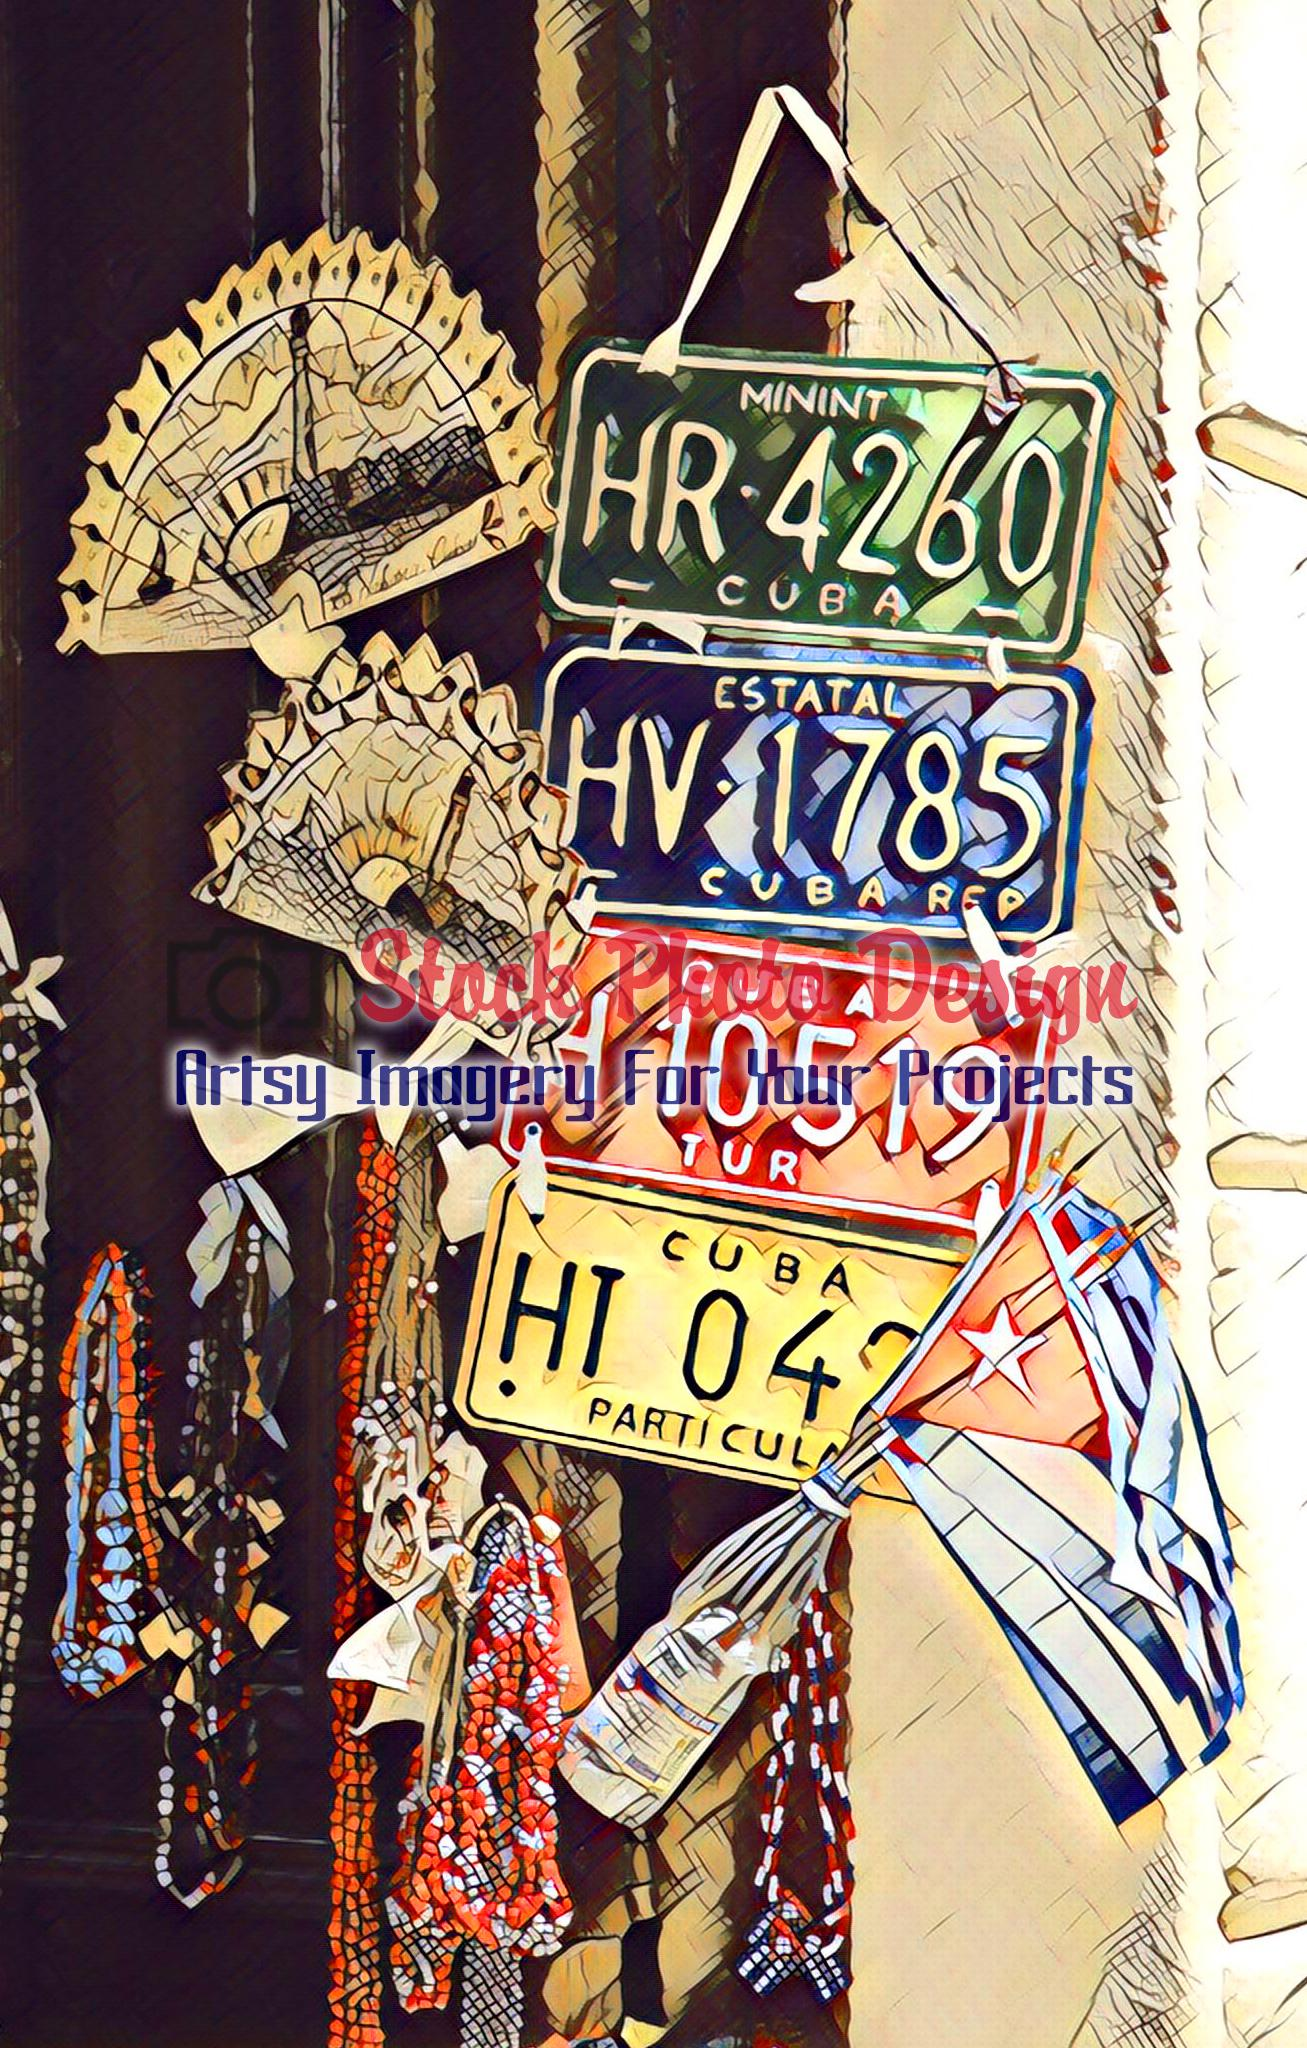 Cuban Car Plates 1 - Dimensions: 1307 by 2048 pixels